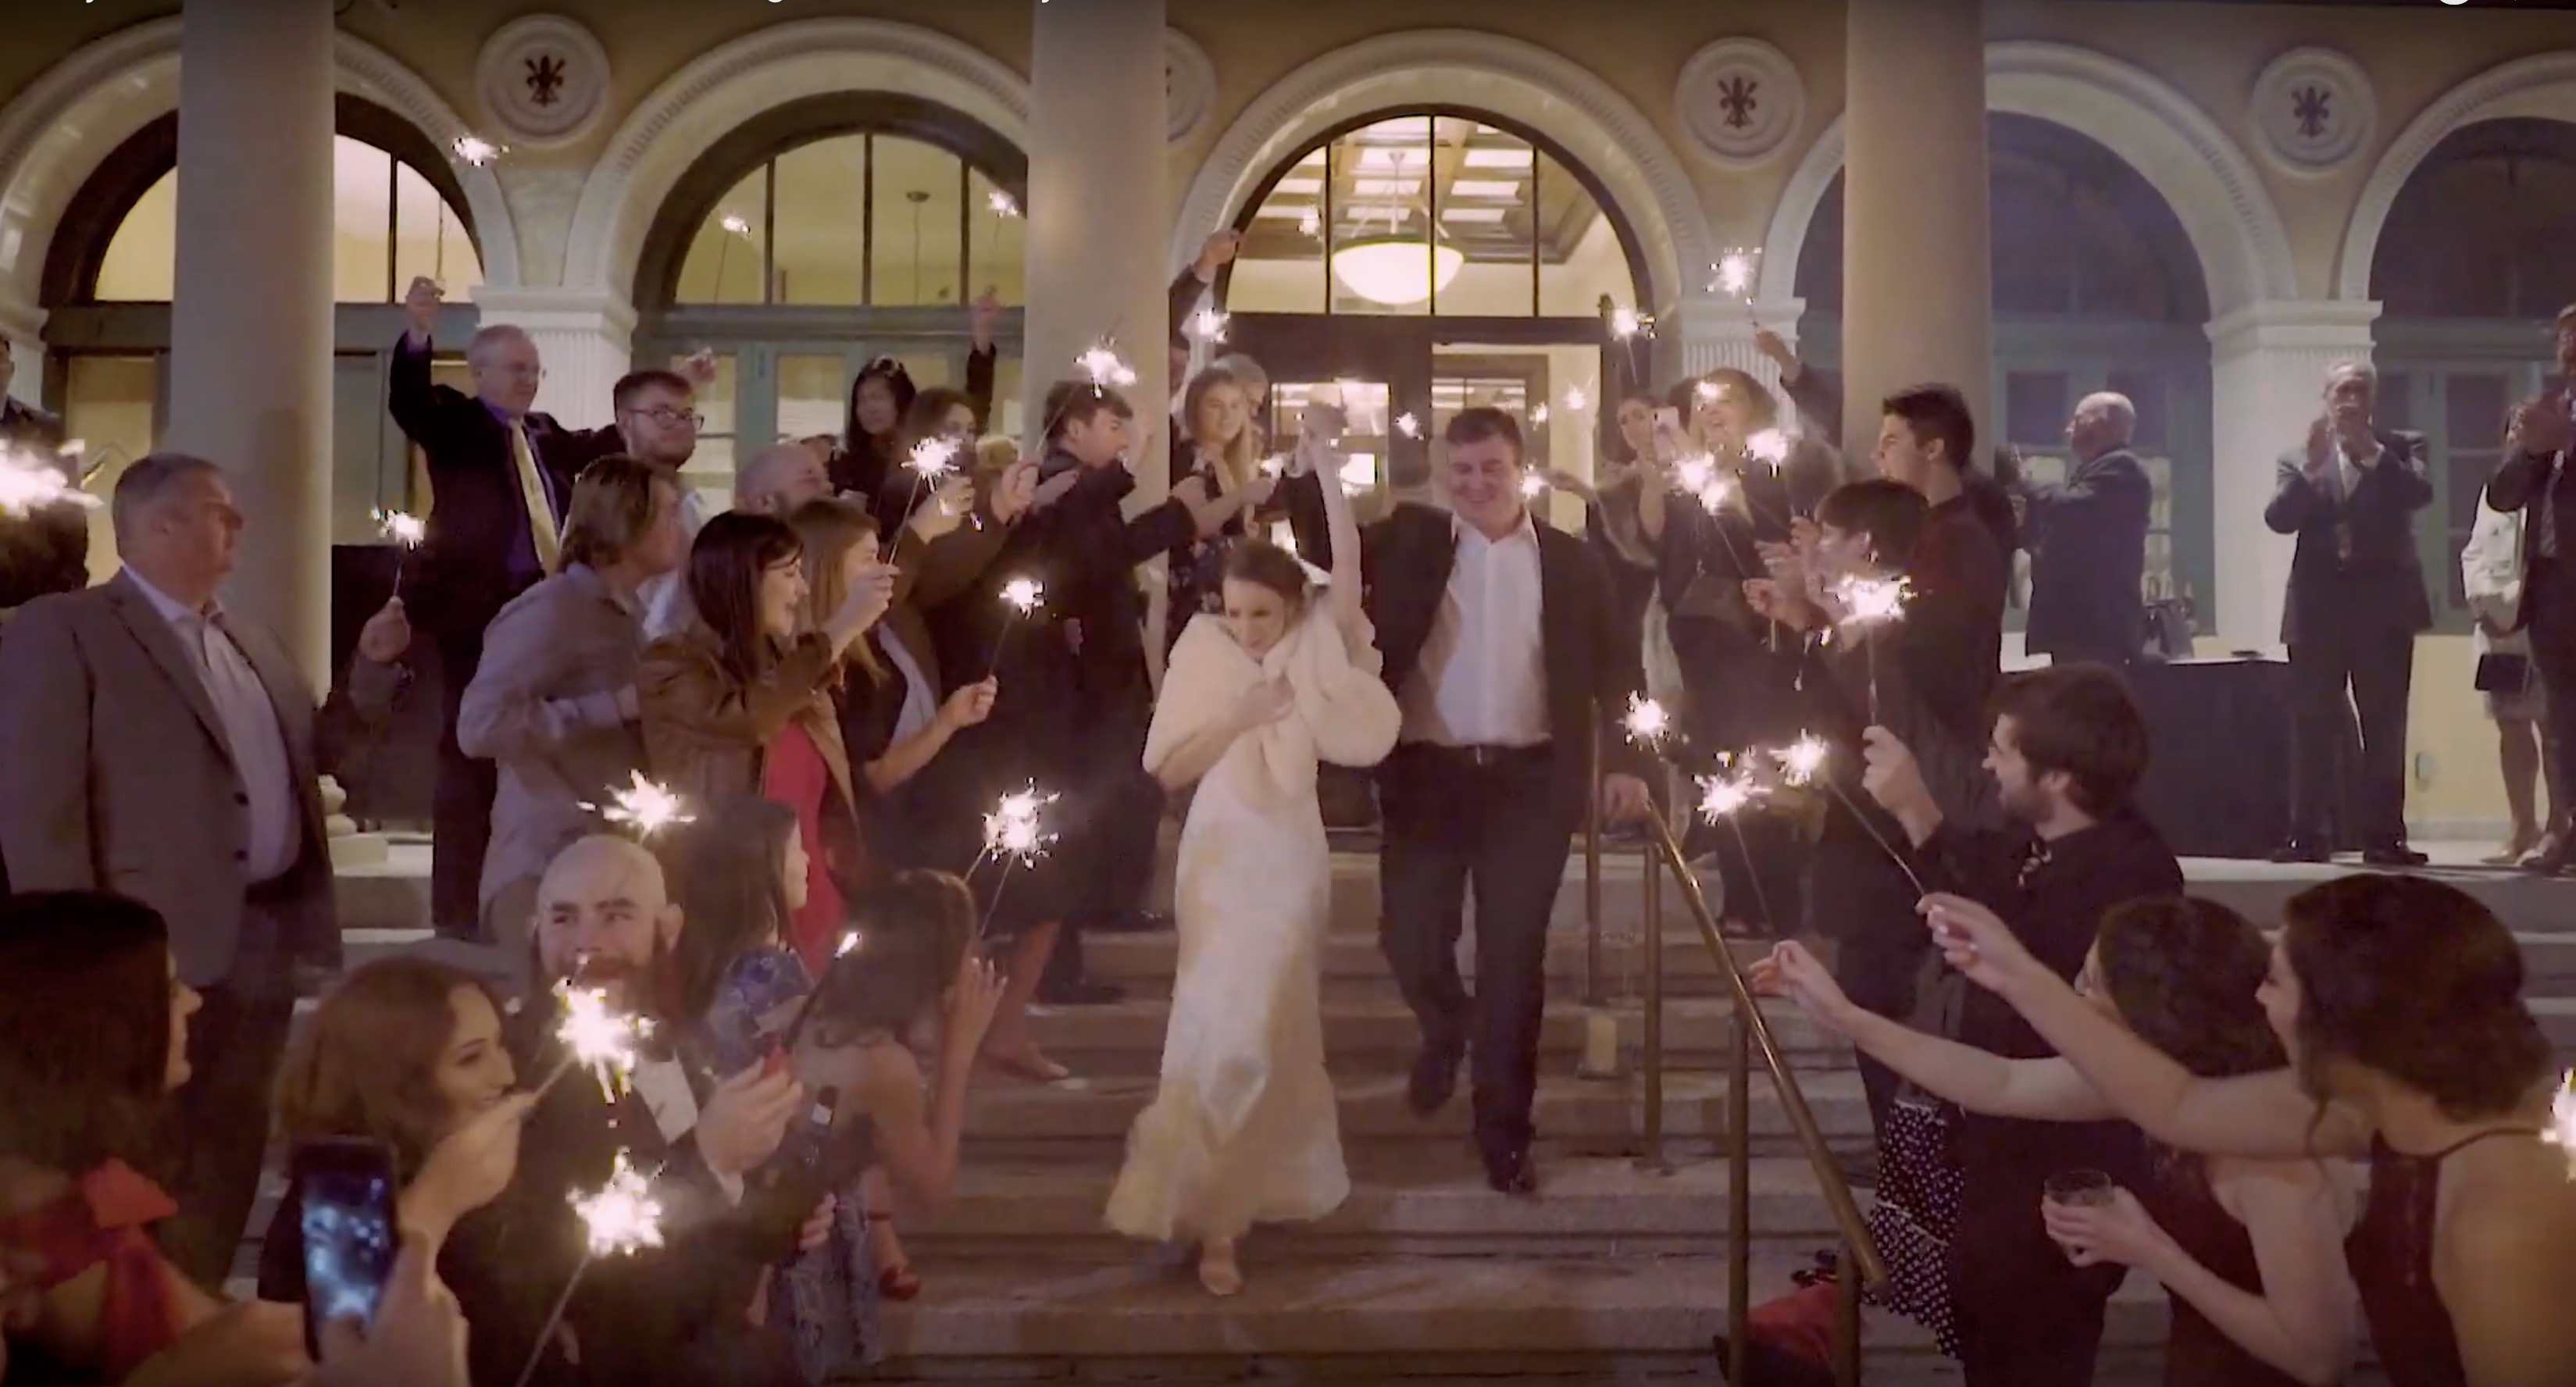 Client - Emily & Andrew McAlister Wedding Film, Location - St. George Catholic Church / City Club of Baton Rouge, Date - January 4, 2019